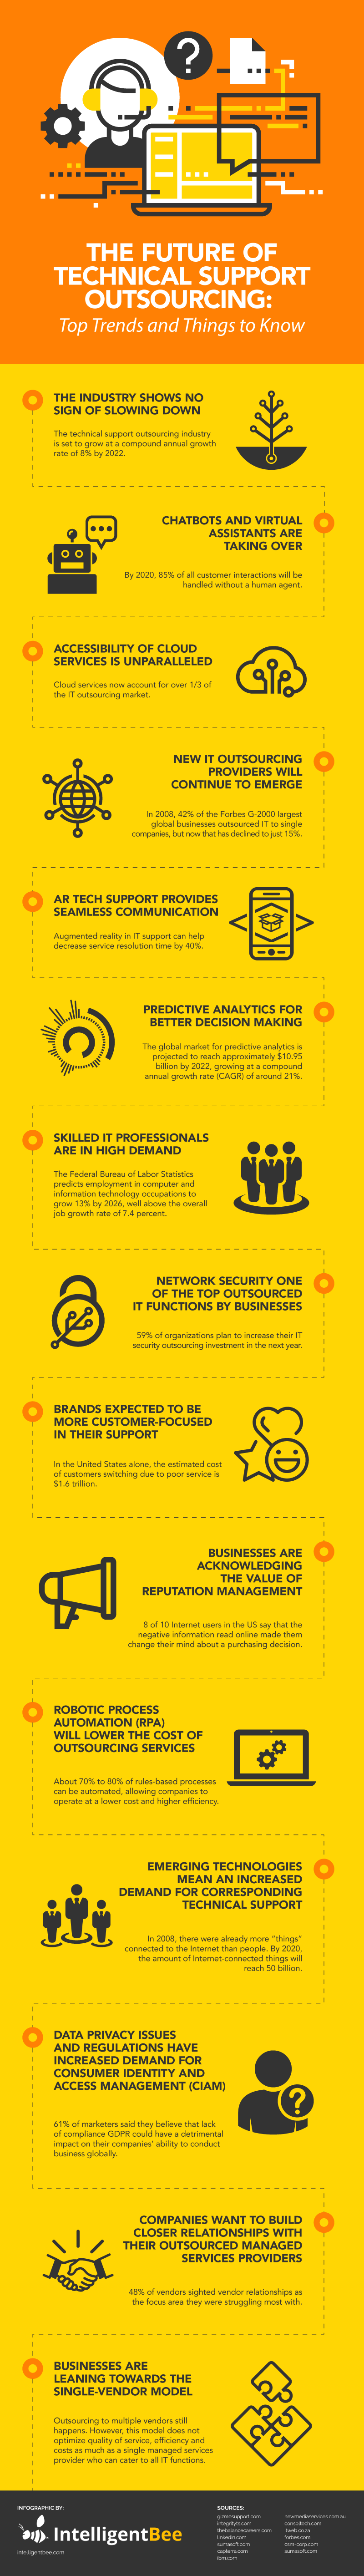 The Future of Technical Support Outsourcing: Top Trends and Things to Know - Infographic